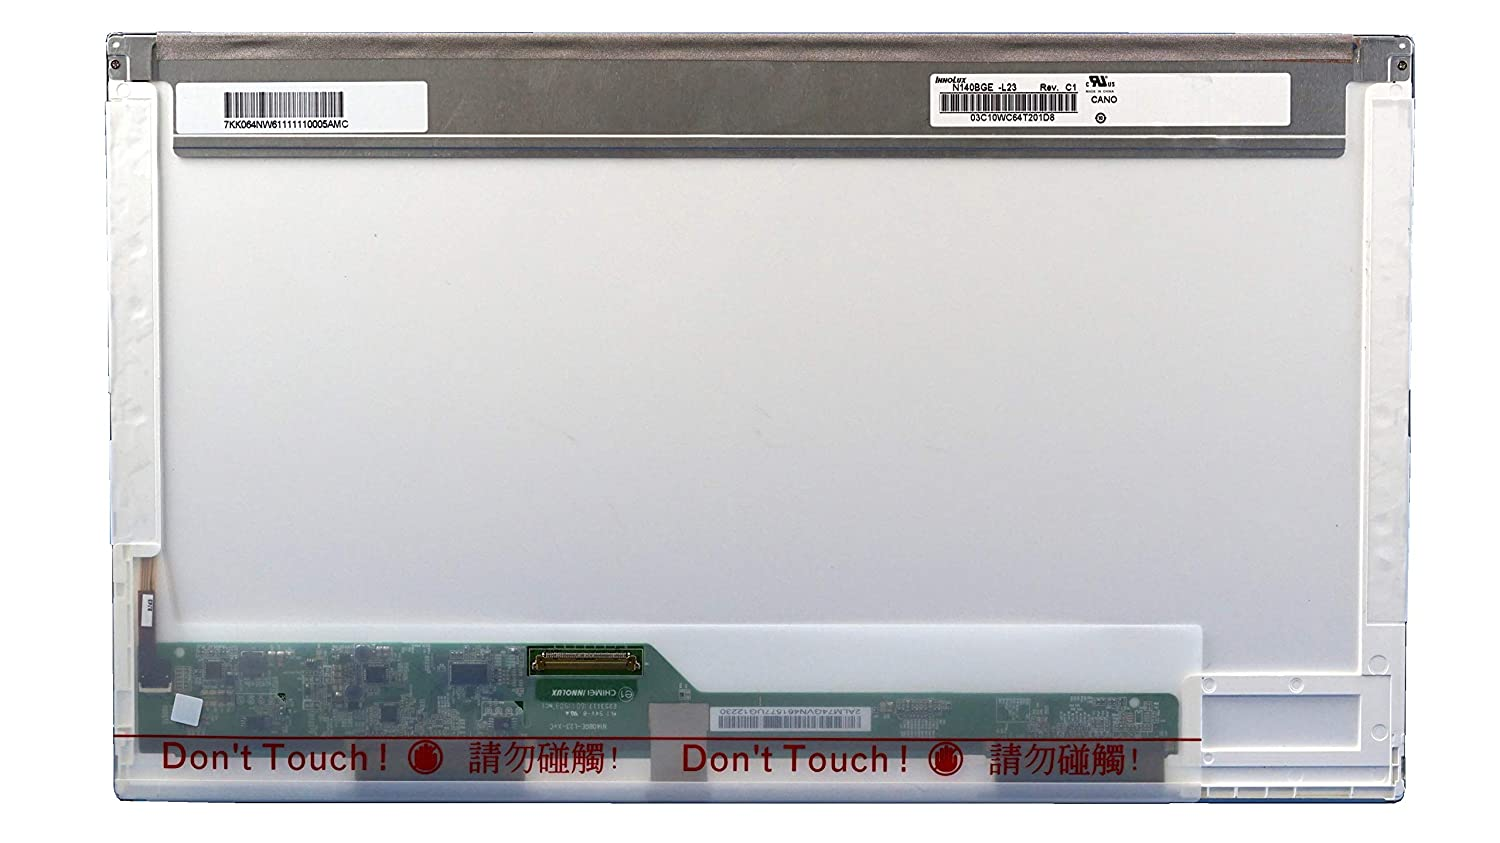 Generic New 14.0' WXGA HD LED DIODE Replacement LAPTOP LCD Screen Compatible with Dell Latitude E6430, FITS LP140WH1-TLA1, LTN140AT02,N140BGE-L23